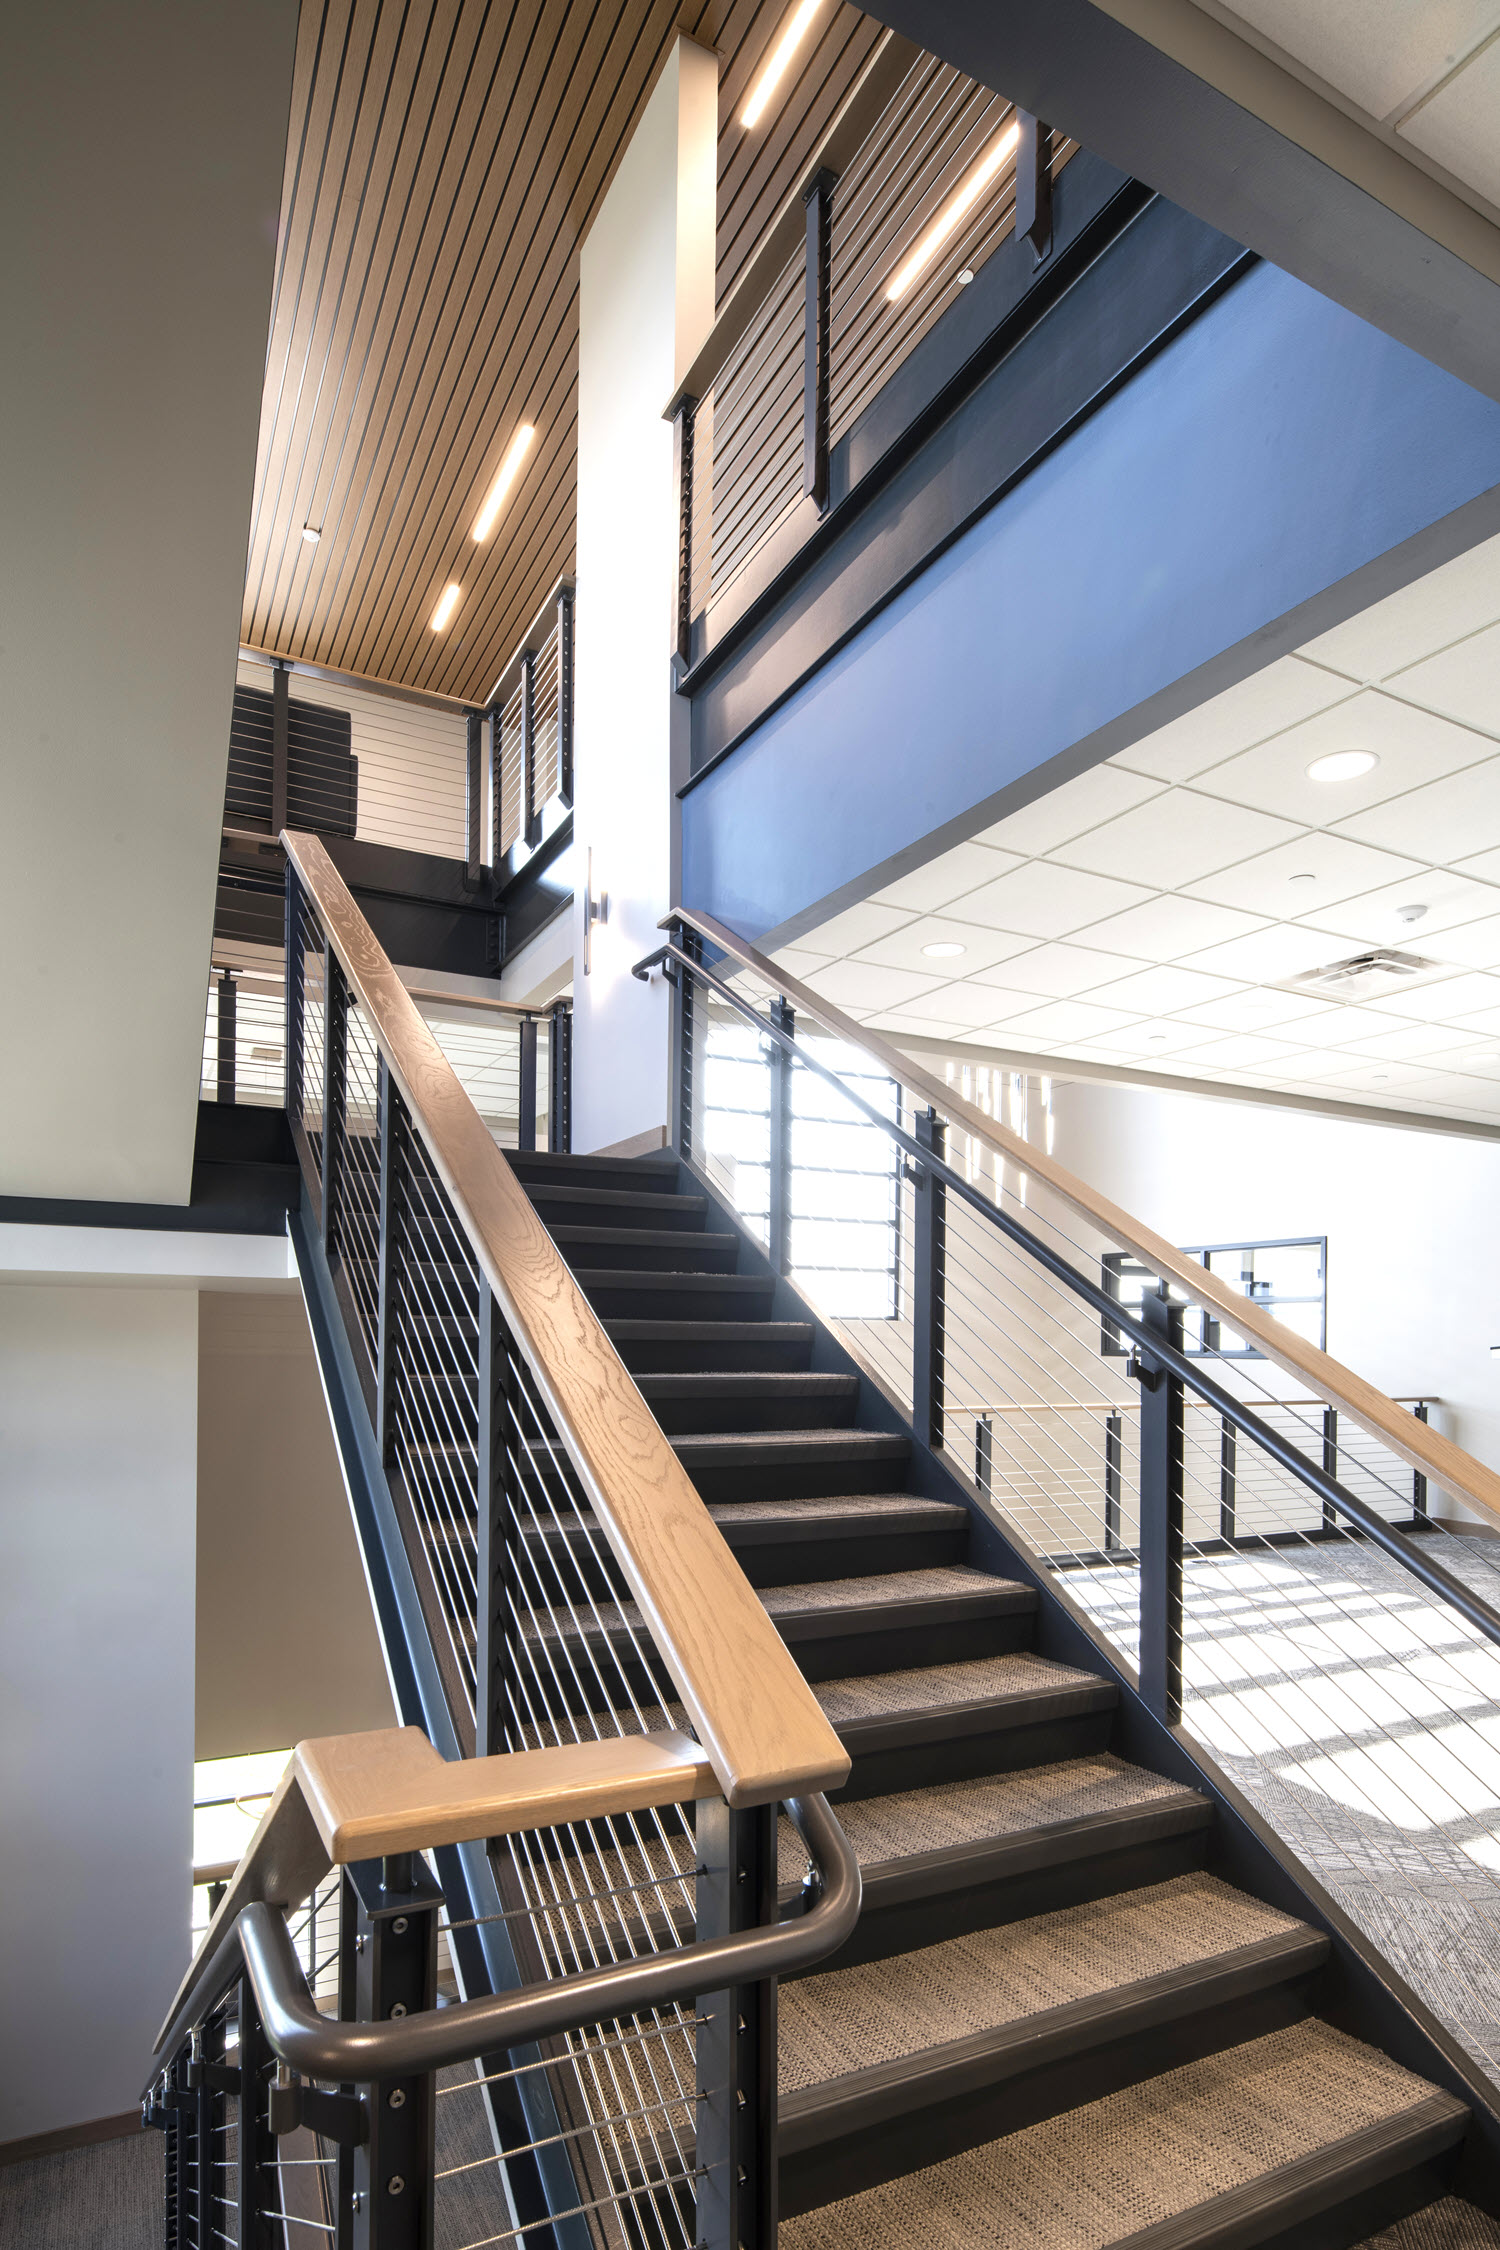 Cable railings on office staircase with ADA hand rails and wood top rail.